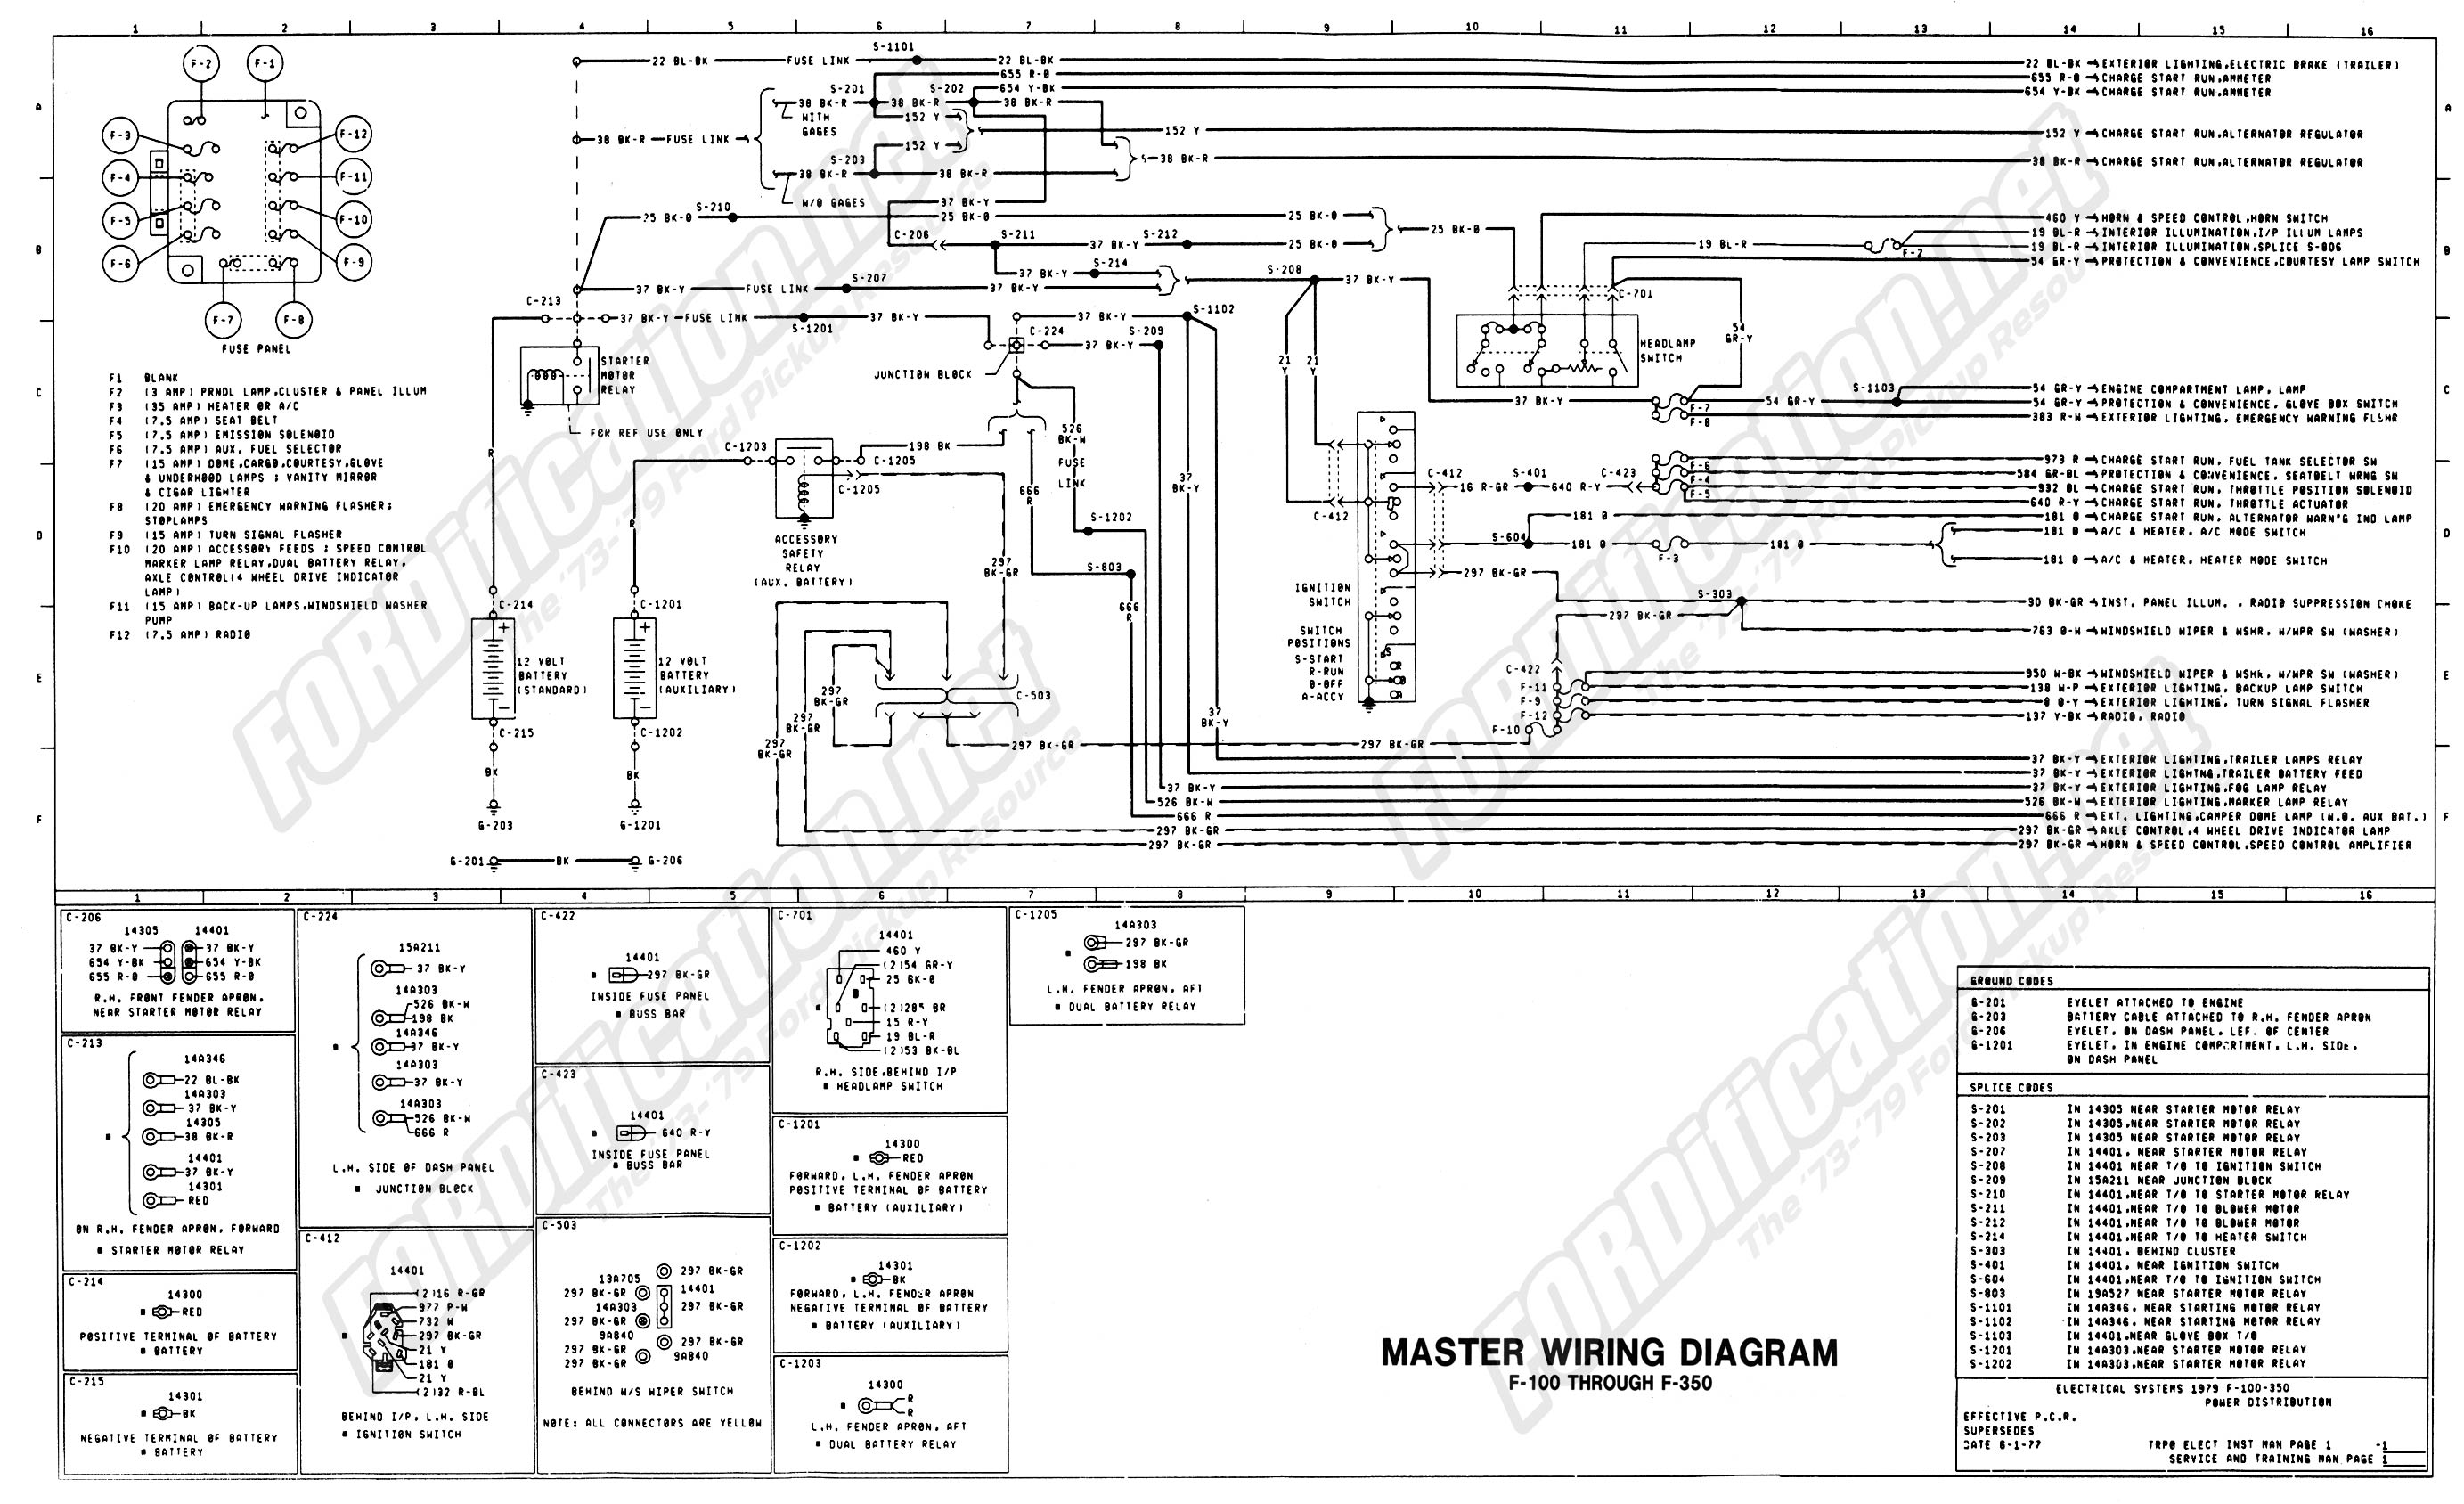 wiring_79master_1of9 1973 1979 ford truck wiring diagrams & schematics fordification net international 2574 wiring diagram at bakdesigns.co